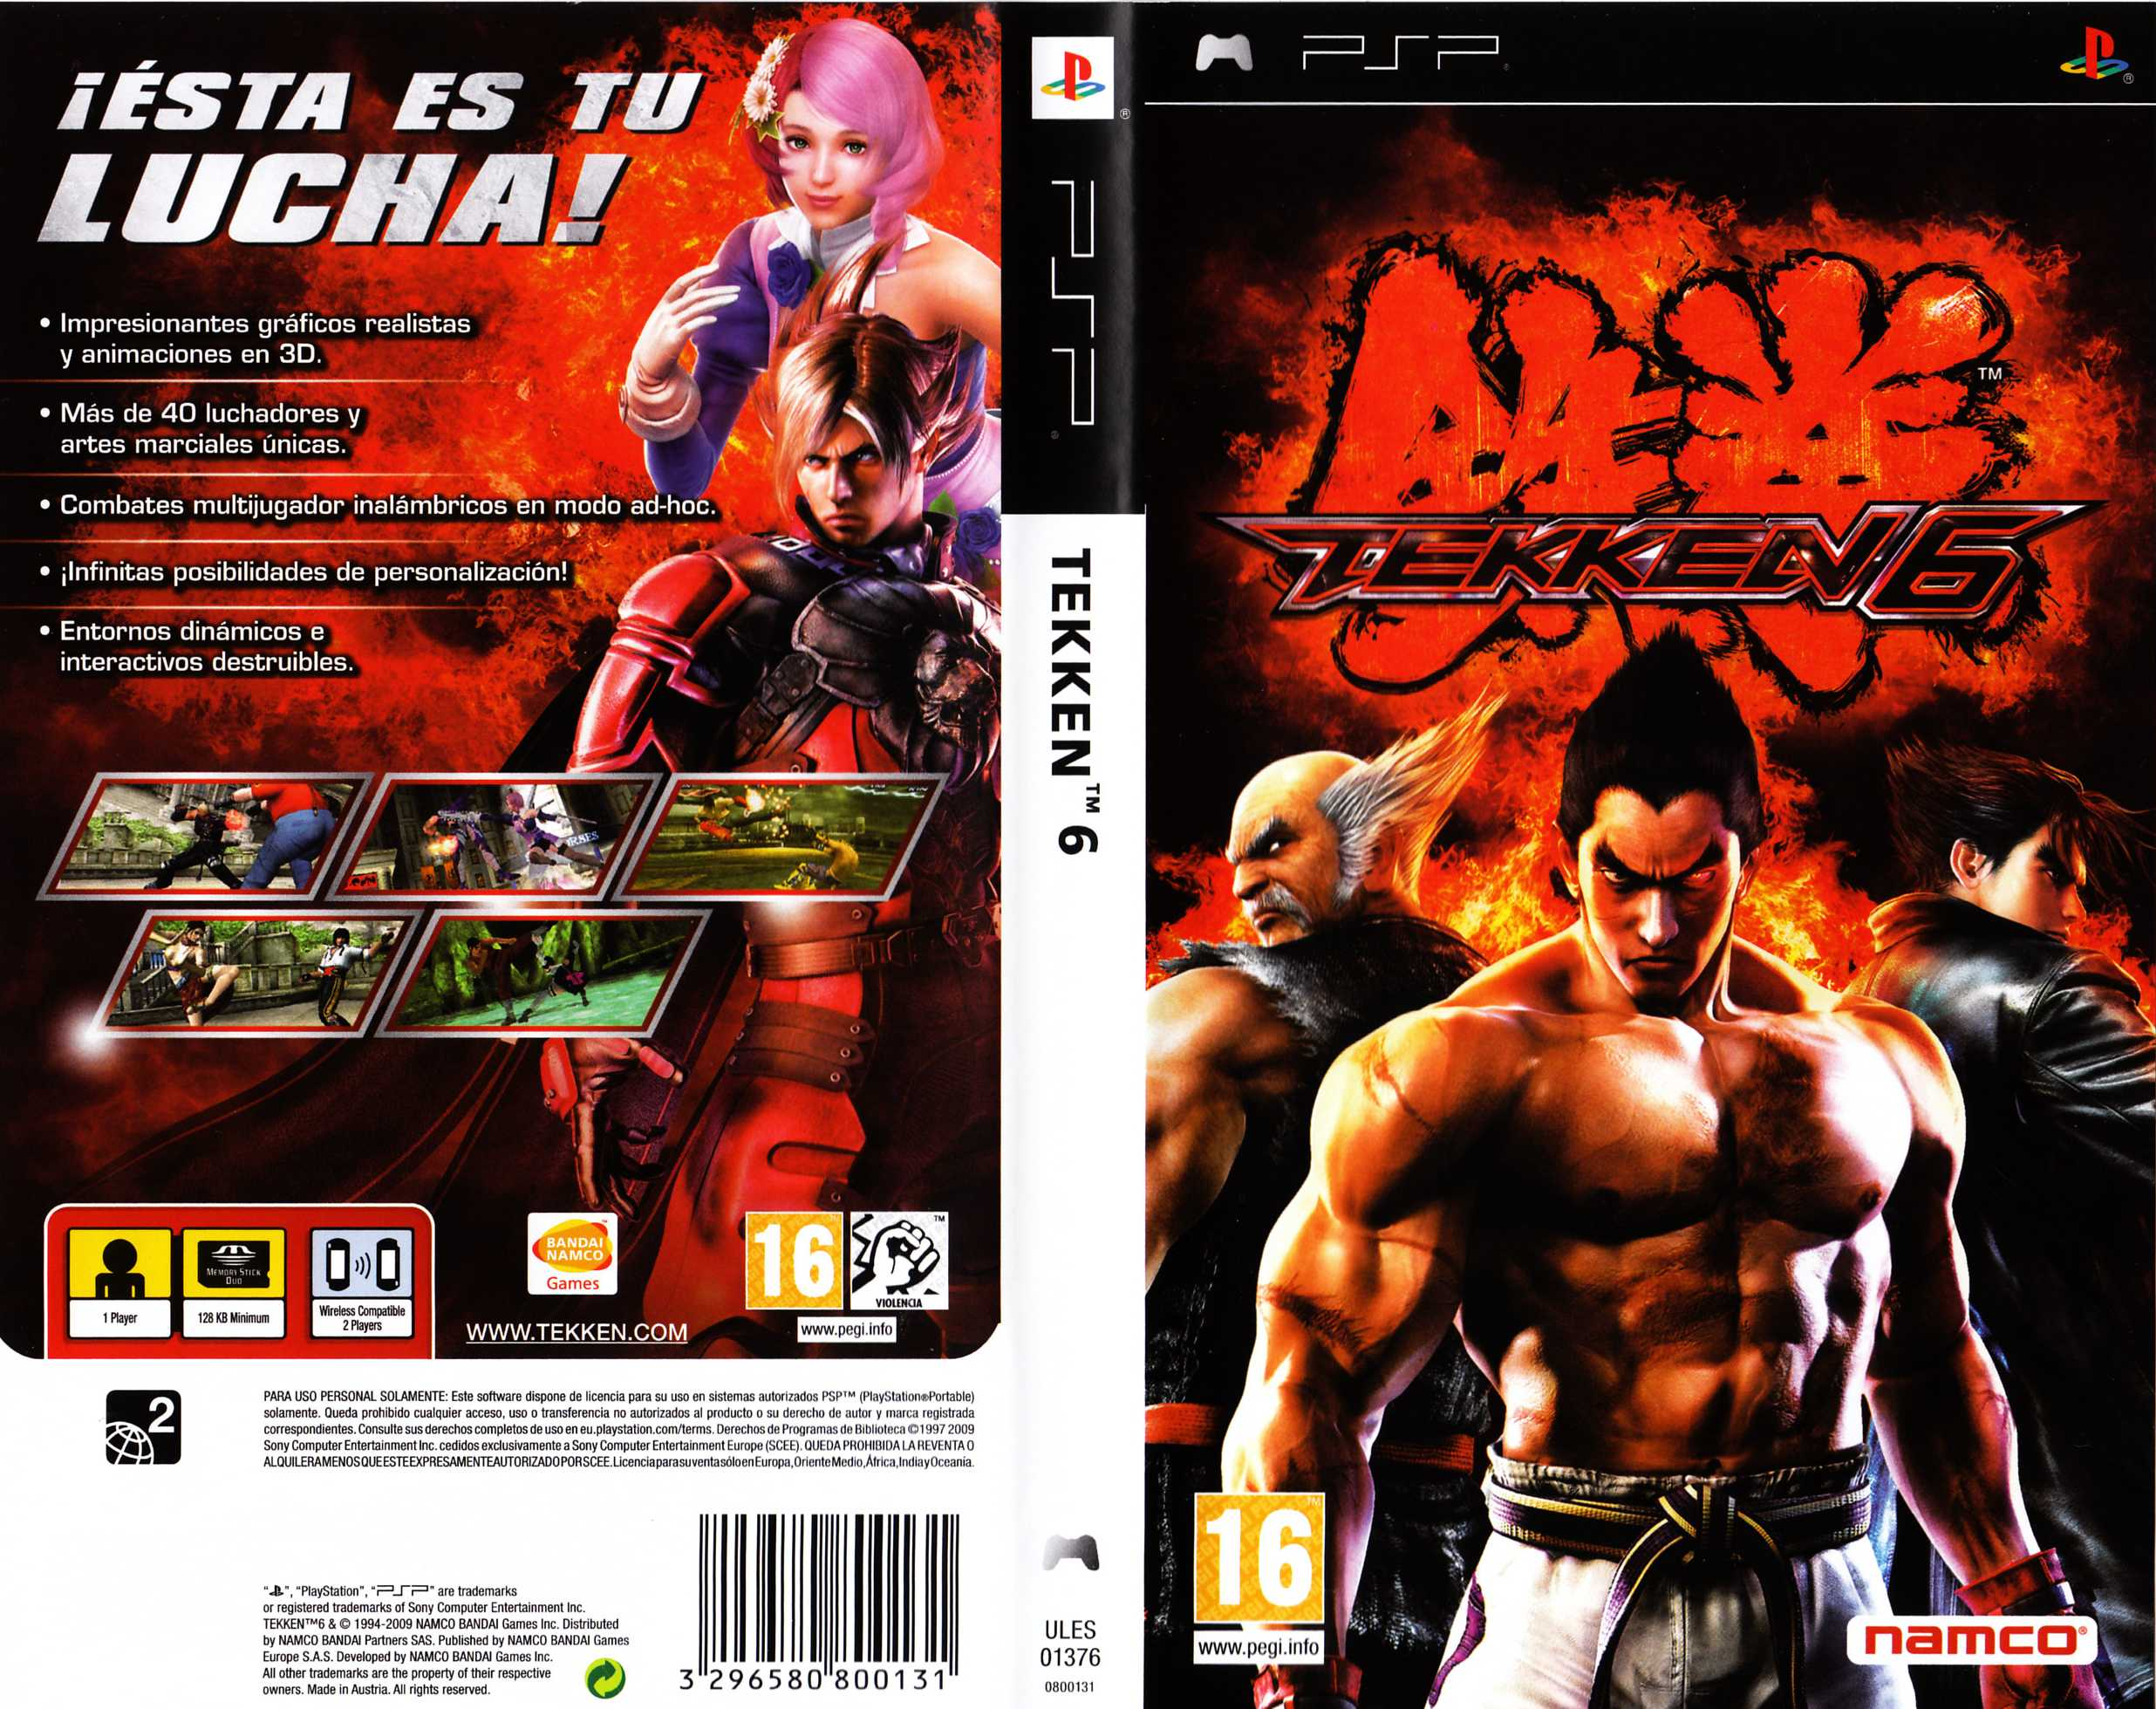 Psp Iso Download Tekken 6 Zynsmeling62